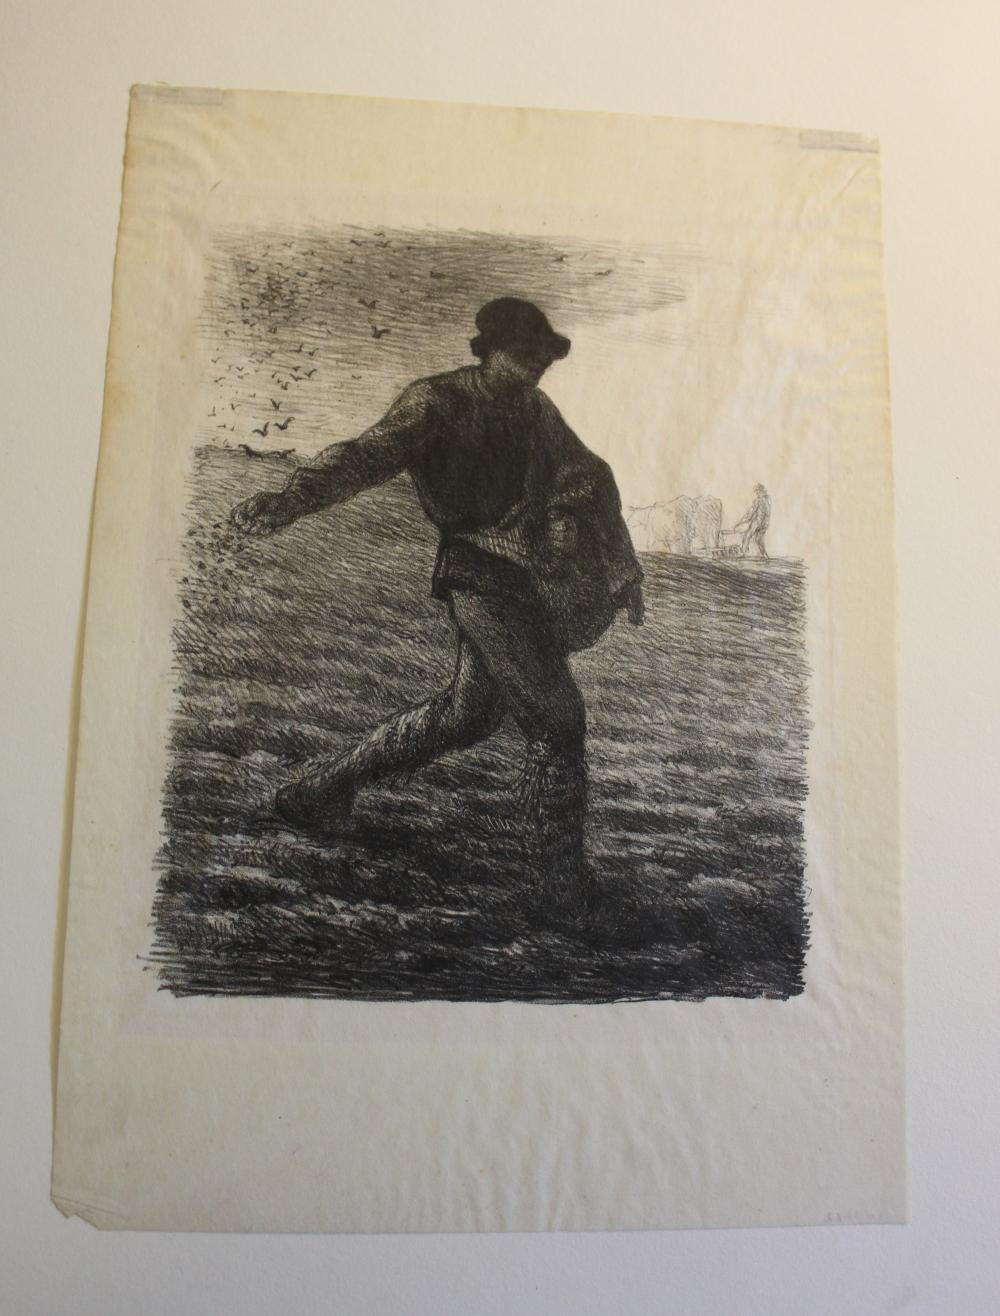 """JEAN FRANCOIS MILLET (France, 1814-1875), """"Man with Wheelbarrow (Le paysan rentrant du fumier)""""., Etching on paper, 7"""" x 5.5"""" sight. Framed 16.25"""" x 14.25""""."""